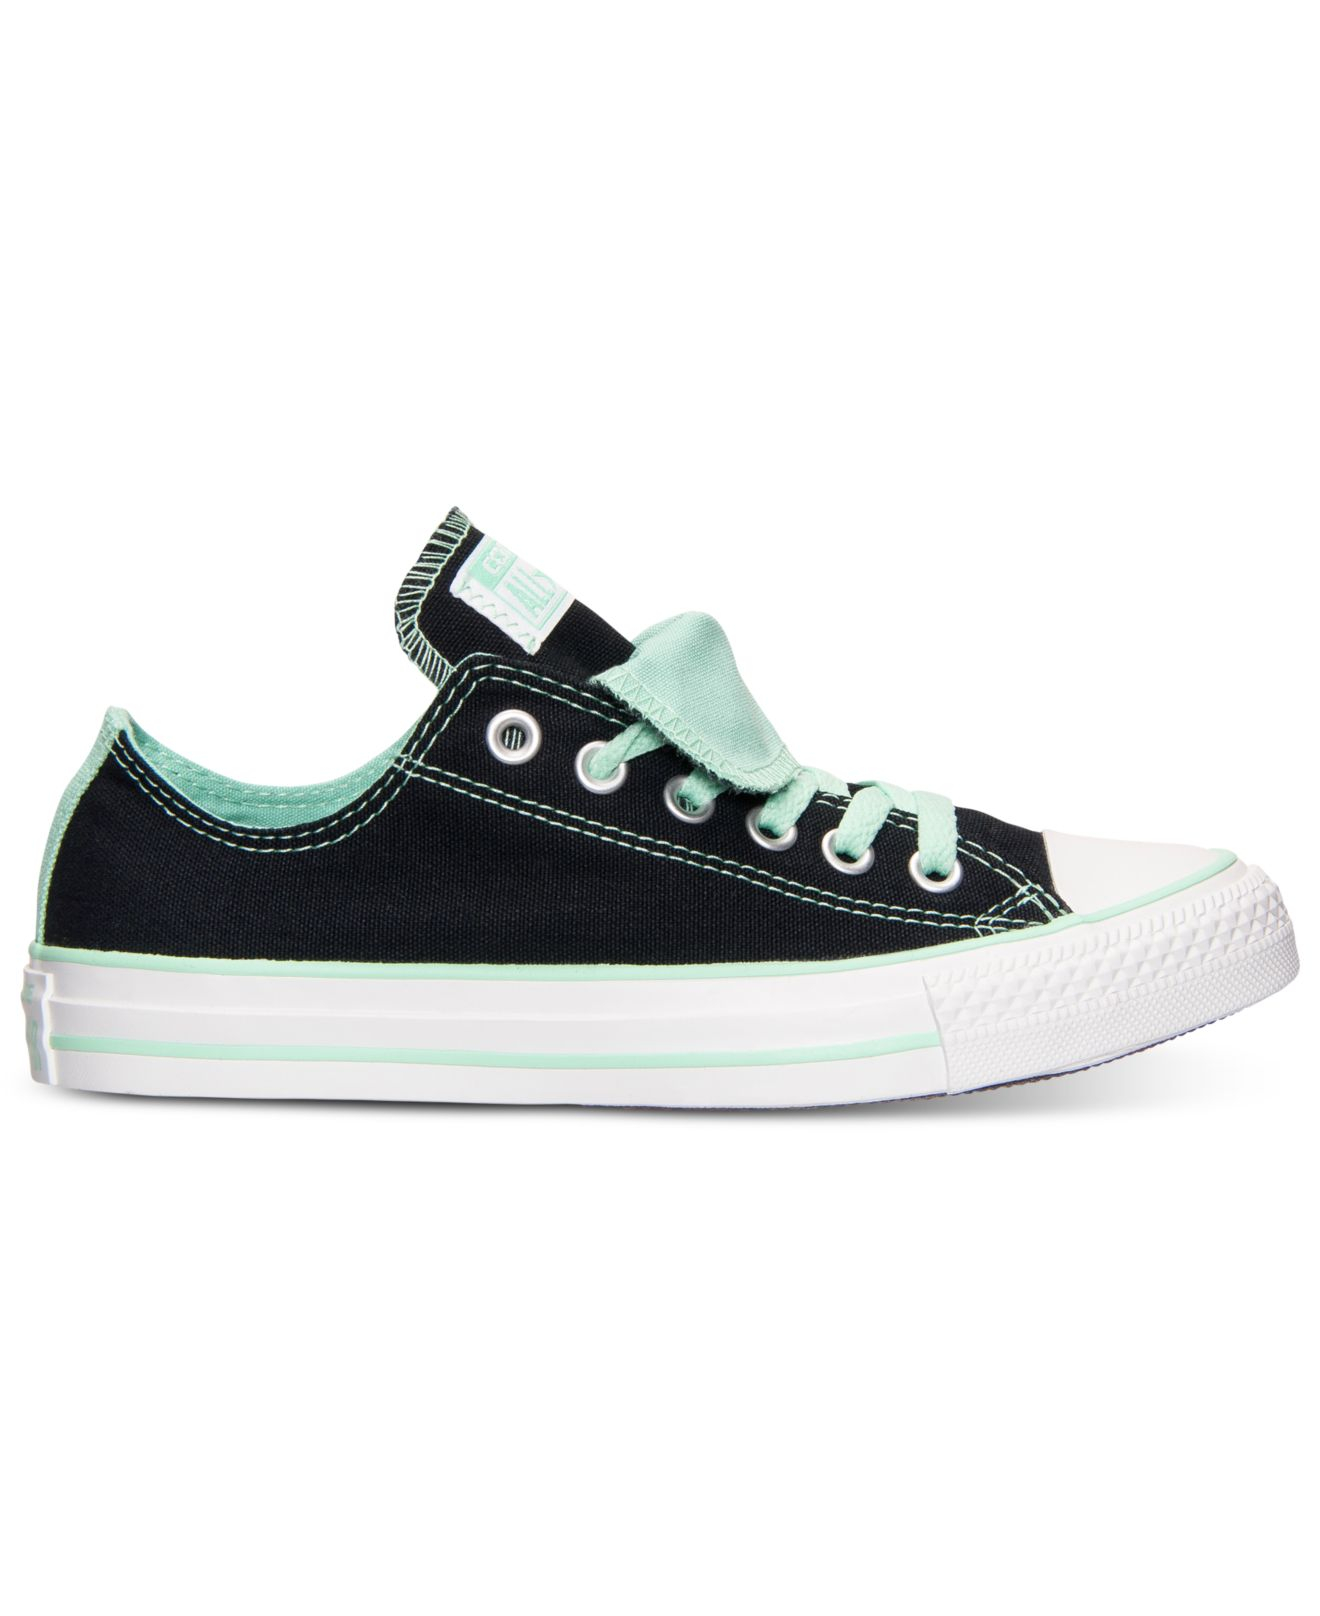 e9cffb6b13f775 Lyst - Converse Women S Chuck Taylor All Star Double Tongue Casual Sneakers  From Finish Line in Green